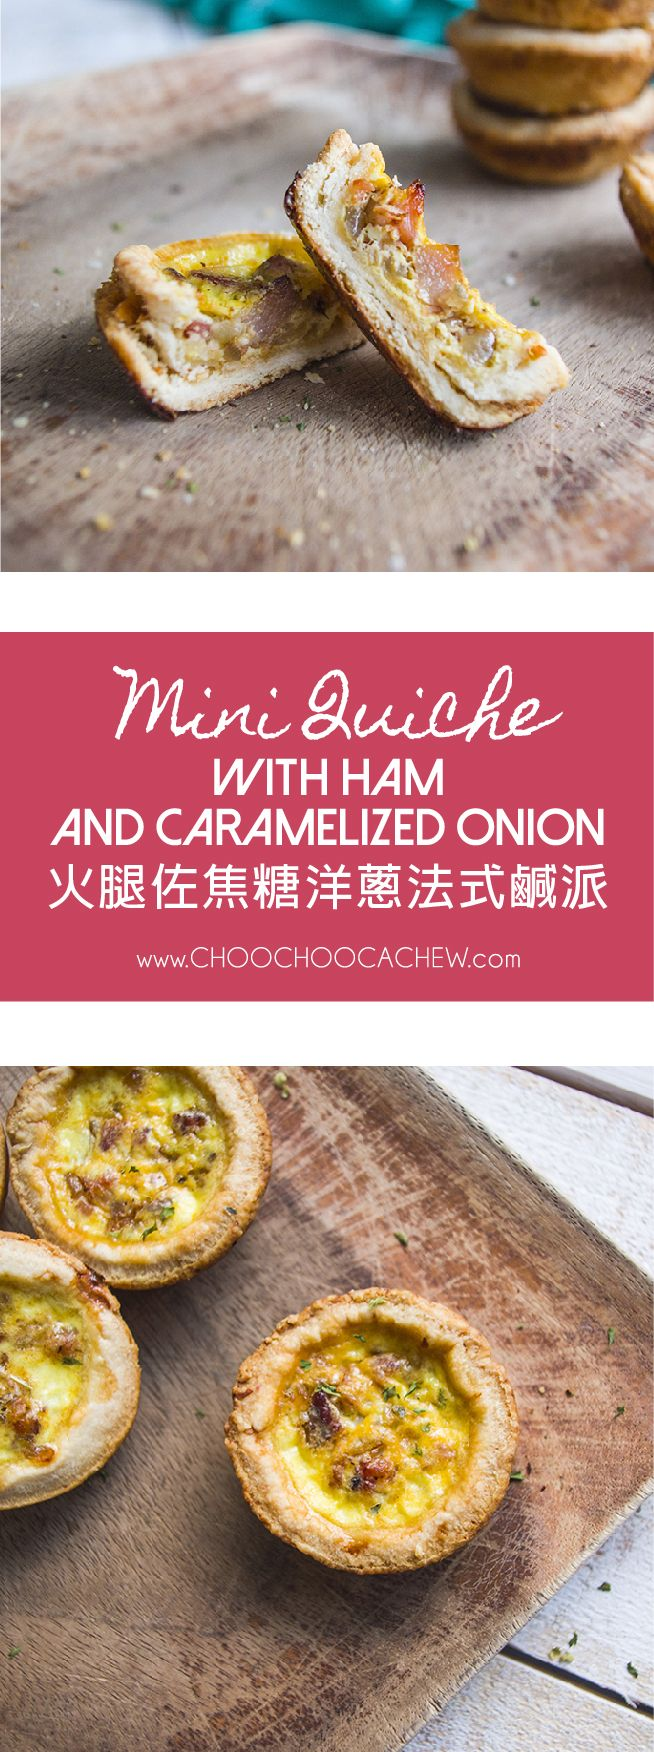 A crowd pleaser. Buttery, flaky pie crust filled with a savory custard that's loaded with ham, caramelized onions, blue cheese. This quiche is decadent, elegant and extremely addicting. Perfect for holiday parties and on-the-go breakfasts.  #Mini #Quiche #HolidayRecipes #holidaybaking #HolidayLeftover #Christmas #Ham #Bacon #Recipe #Egg #Custard #Pie #CaramelizedOnion #Onion #PieCrust #Appetizer #Partyfood #Partyrecipe #FingerFood #Snack #Baking